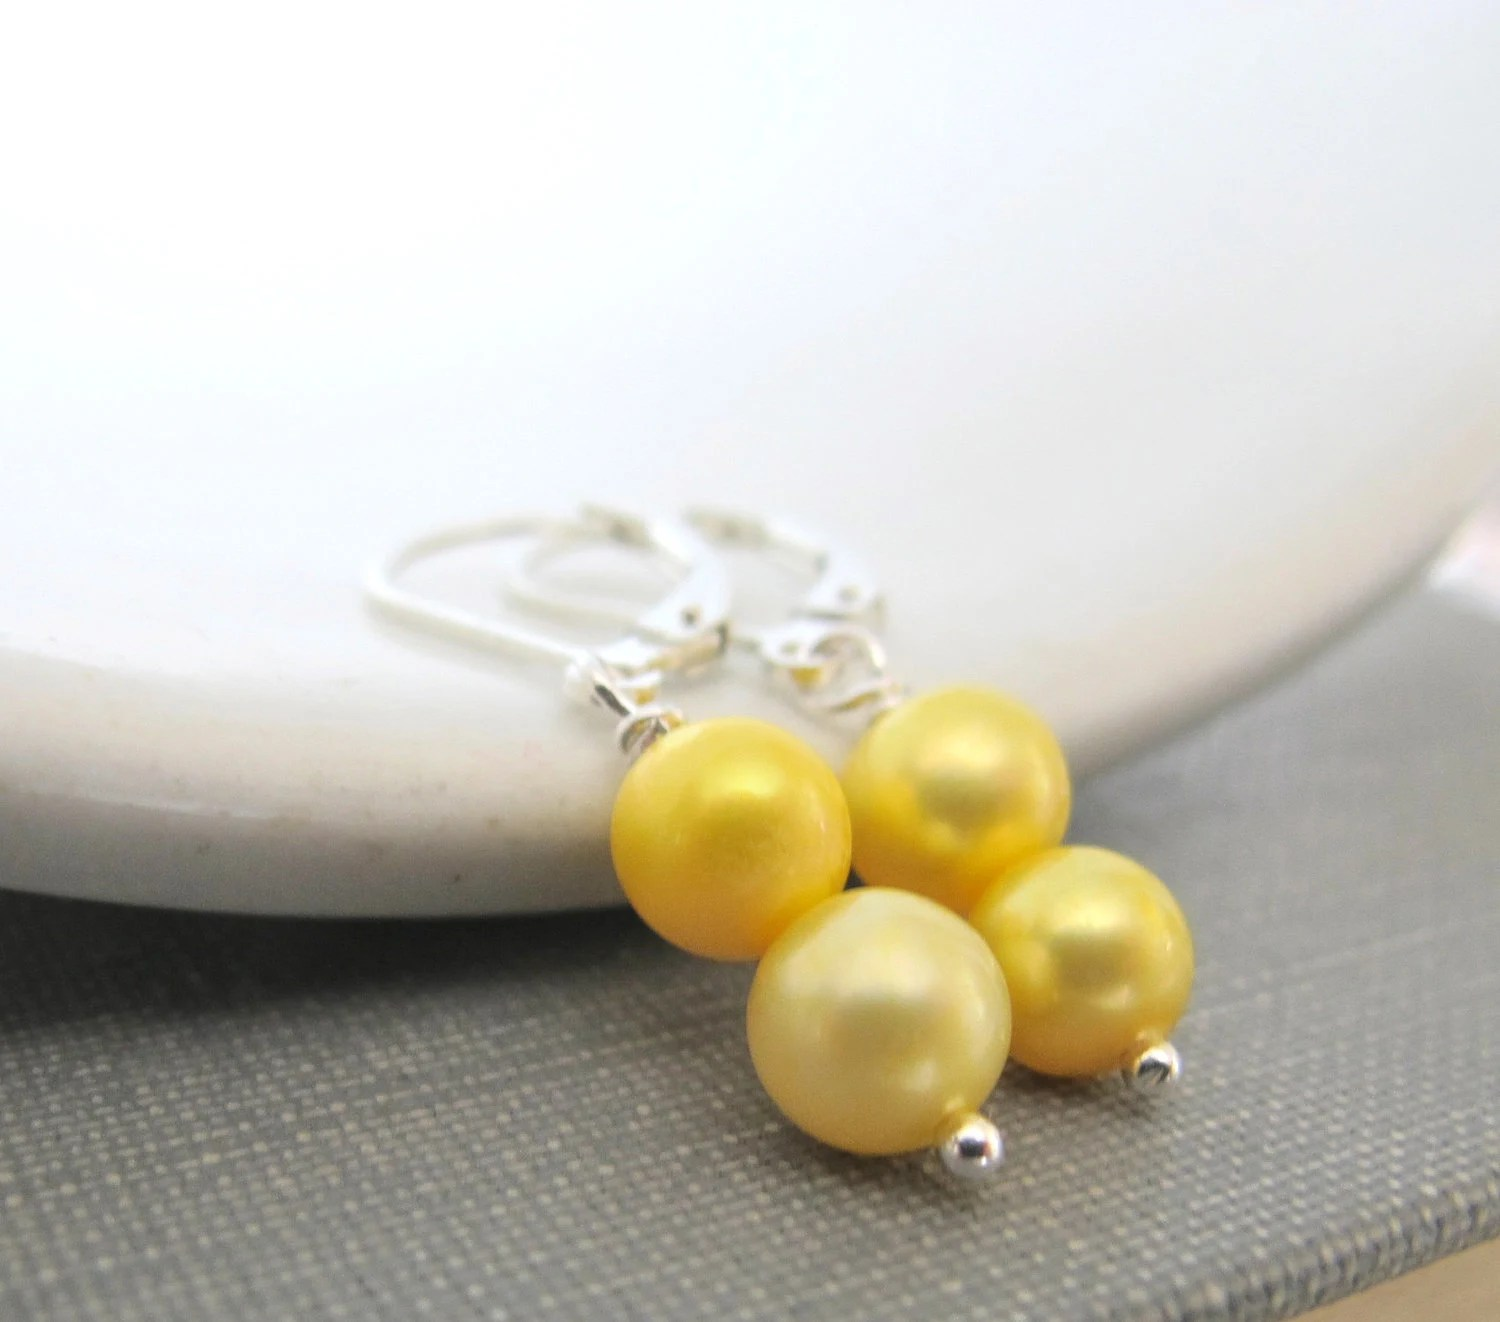 Silver Earrings, Pearl Earrings, Yellow Pearls, Pearl Jewelry, Sterling Silver, Lemon Yellow, Sunshine Yellow, Dangle Earrings, - fiveforty